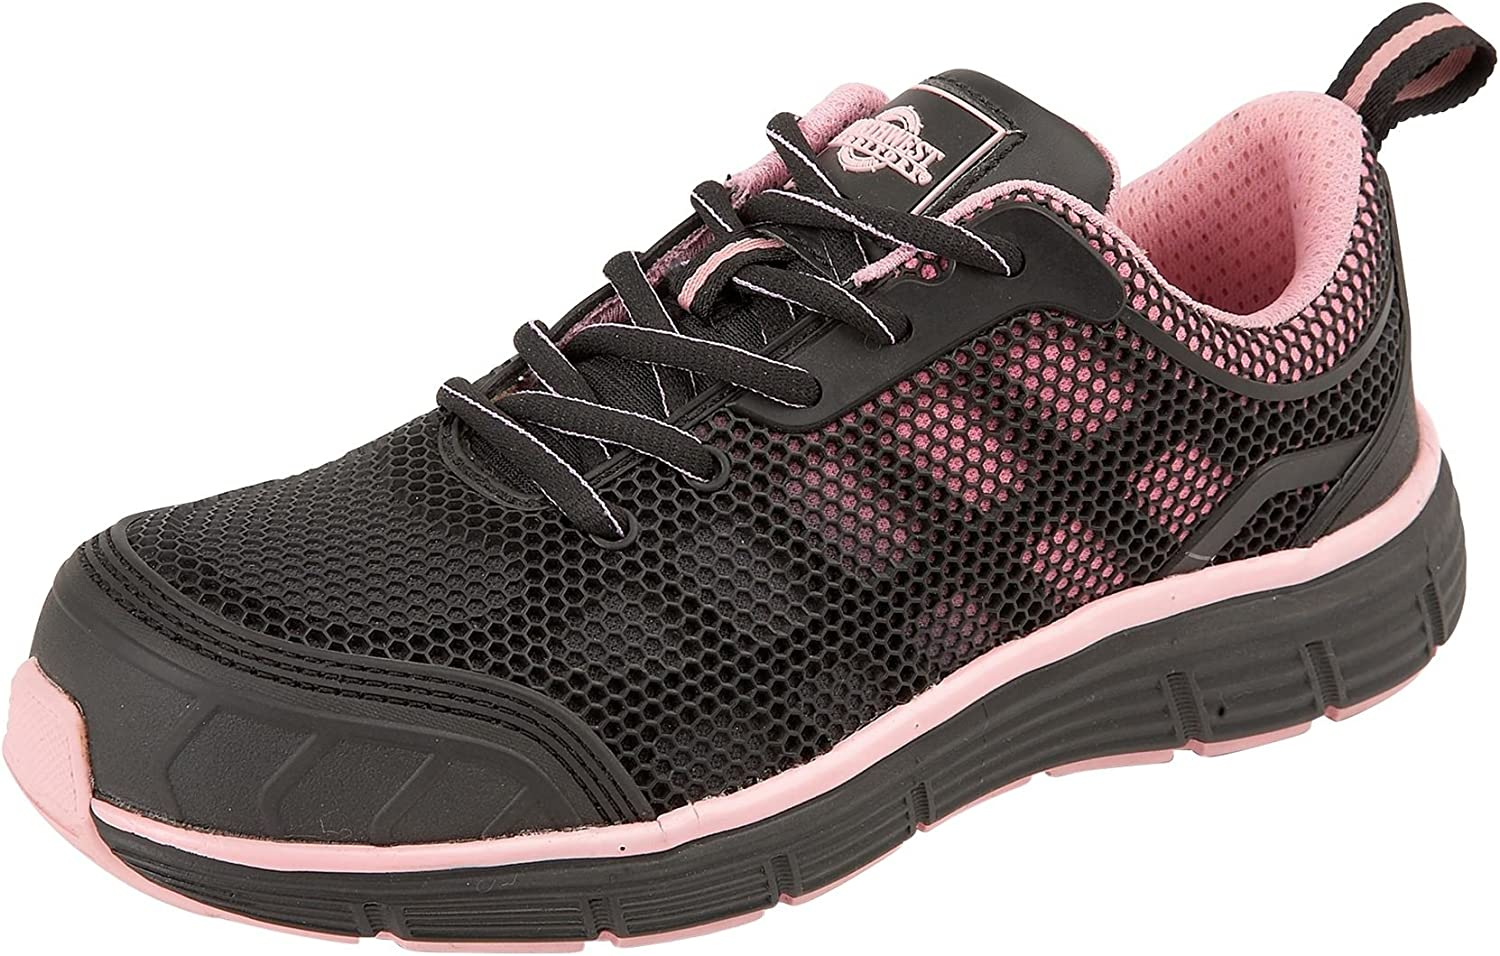 Ladies Fashion Safety Trainers Boots